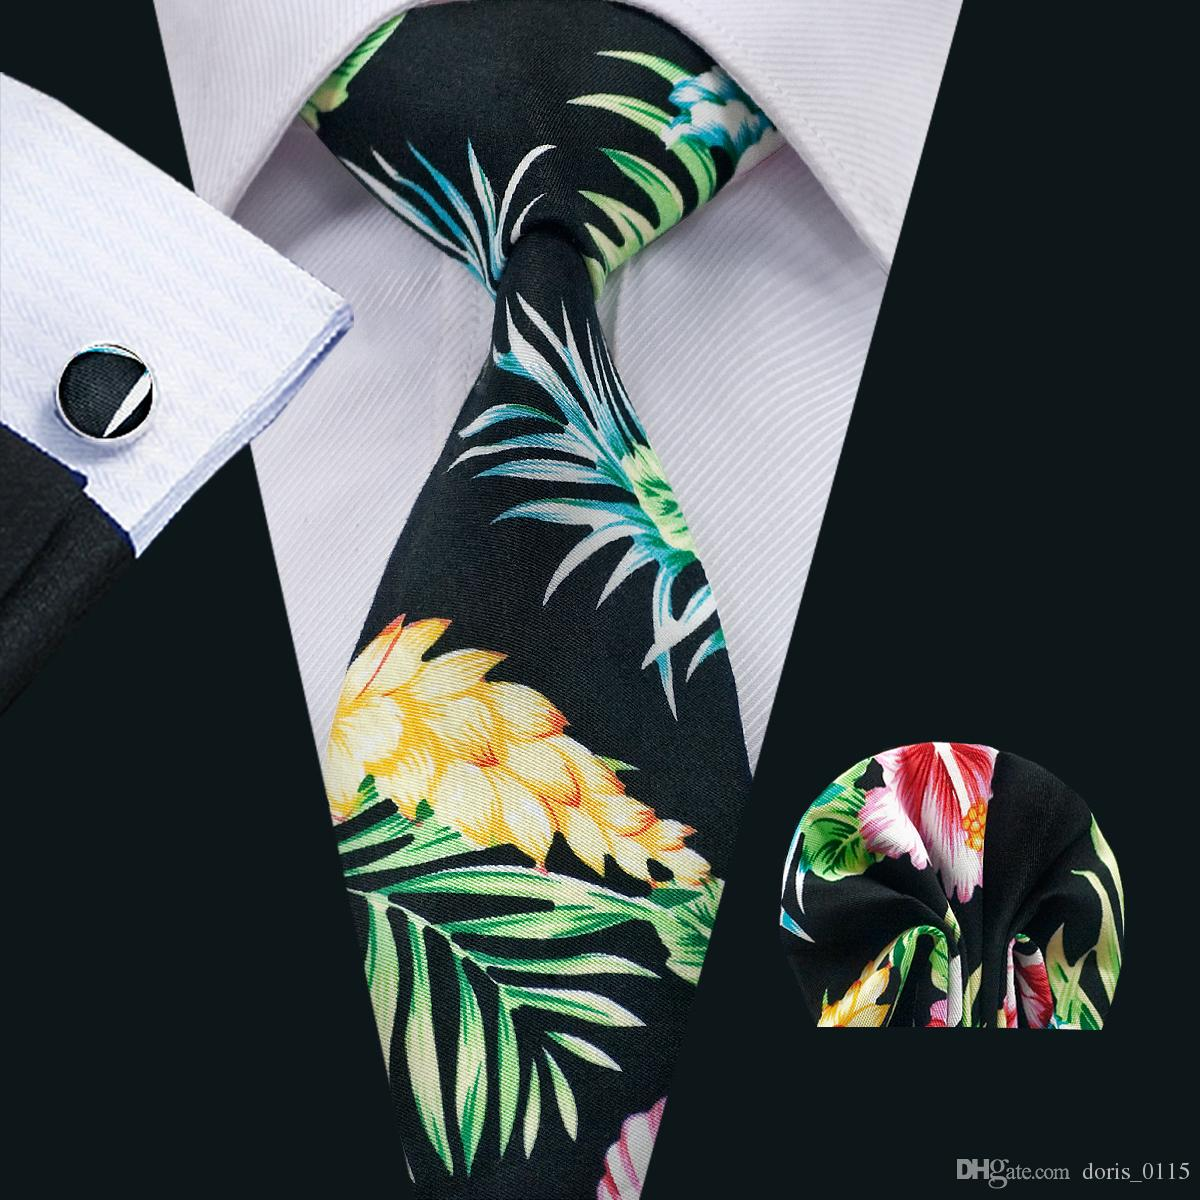 Black Floral Mens Ties Sets Classic Cotton Neck Ties Tie Pocket Square Cuffinks Sets Formal Business Wedding Party Prom N-1324